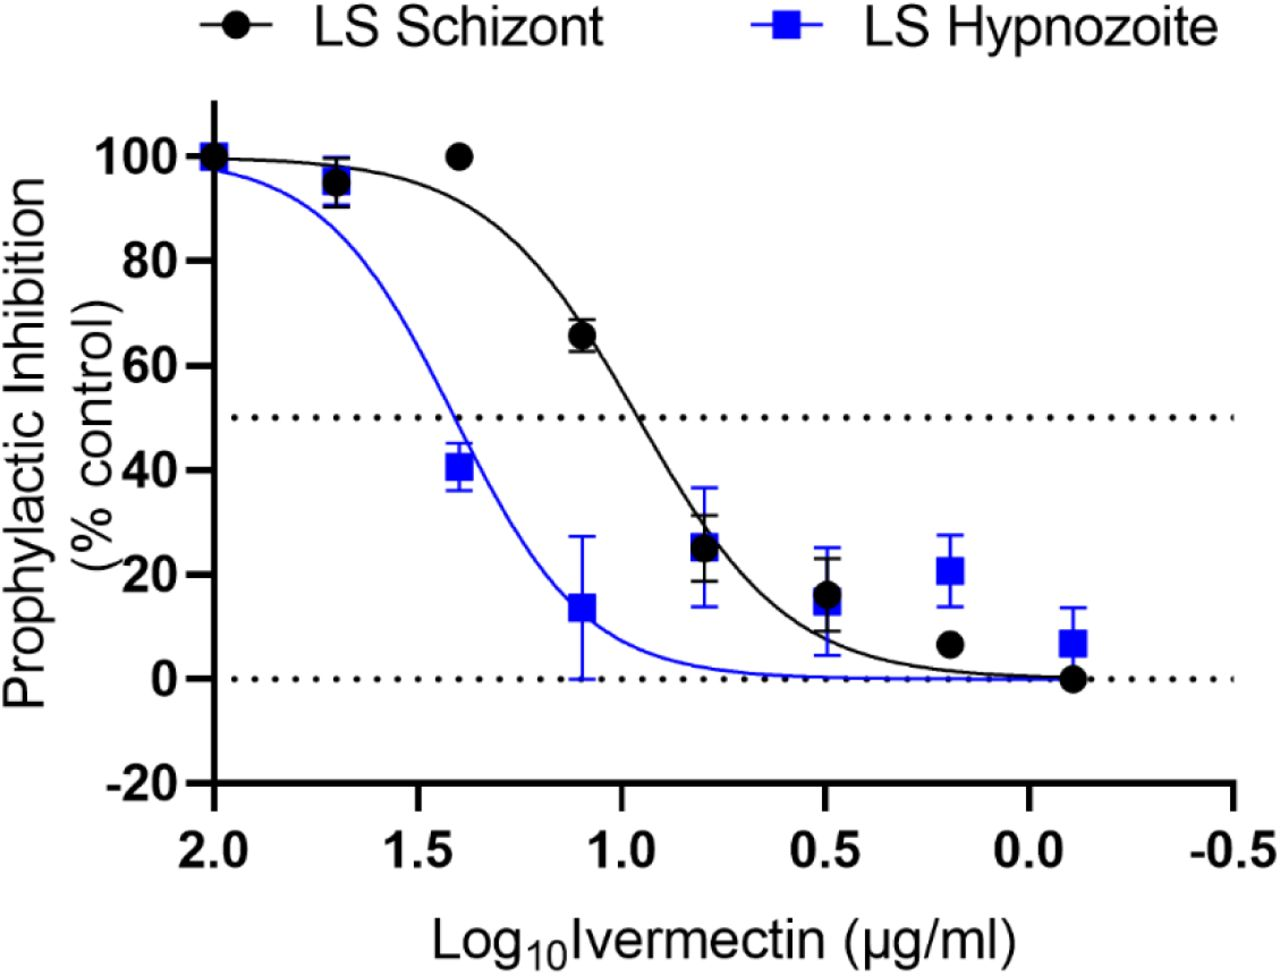 In vitro Plasmodium cynomolgi liver-stage ivermectin inhibition prophylactic results. Prophylactic (days 1-3) exposure of P. cynomolgi to ivermectin demonstrated marginal inhibition of liver schizonts (IC 50 = 9.12 μg/ml) and hypnozoites (IC 50 = 25.59 μg/ml). LS = liver-stage. Graph bars represent means with standard deviation of biological replicates (n = 3) with experimental replicates (n = 2).